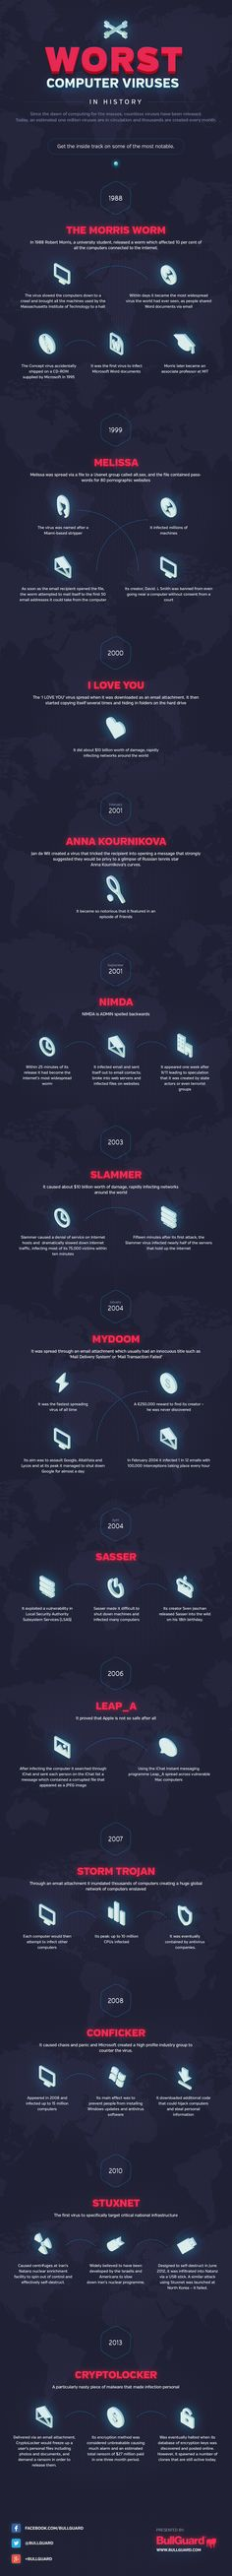 INFOGRAPHIC: The Worst Computer Viruses in History